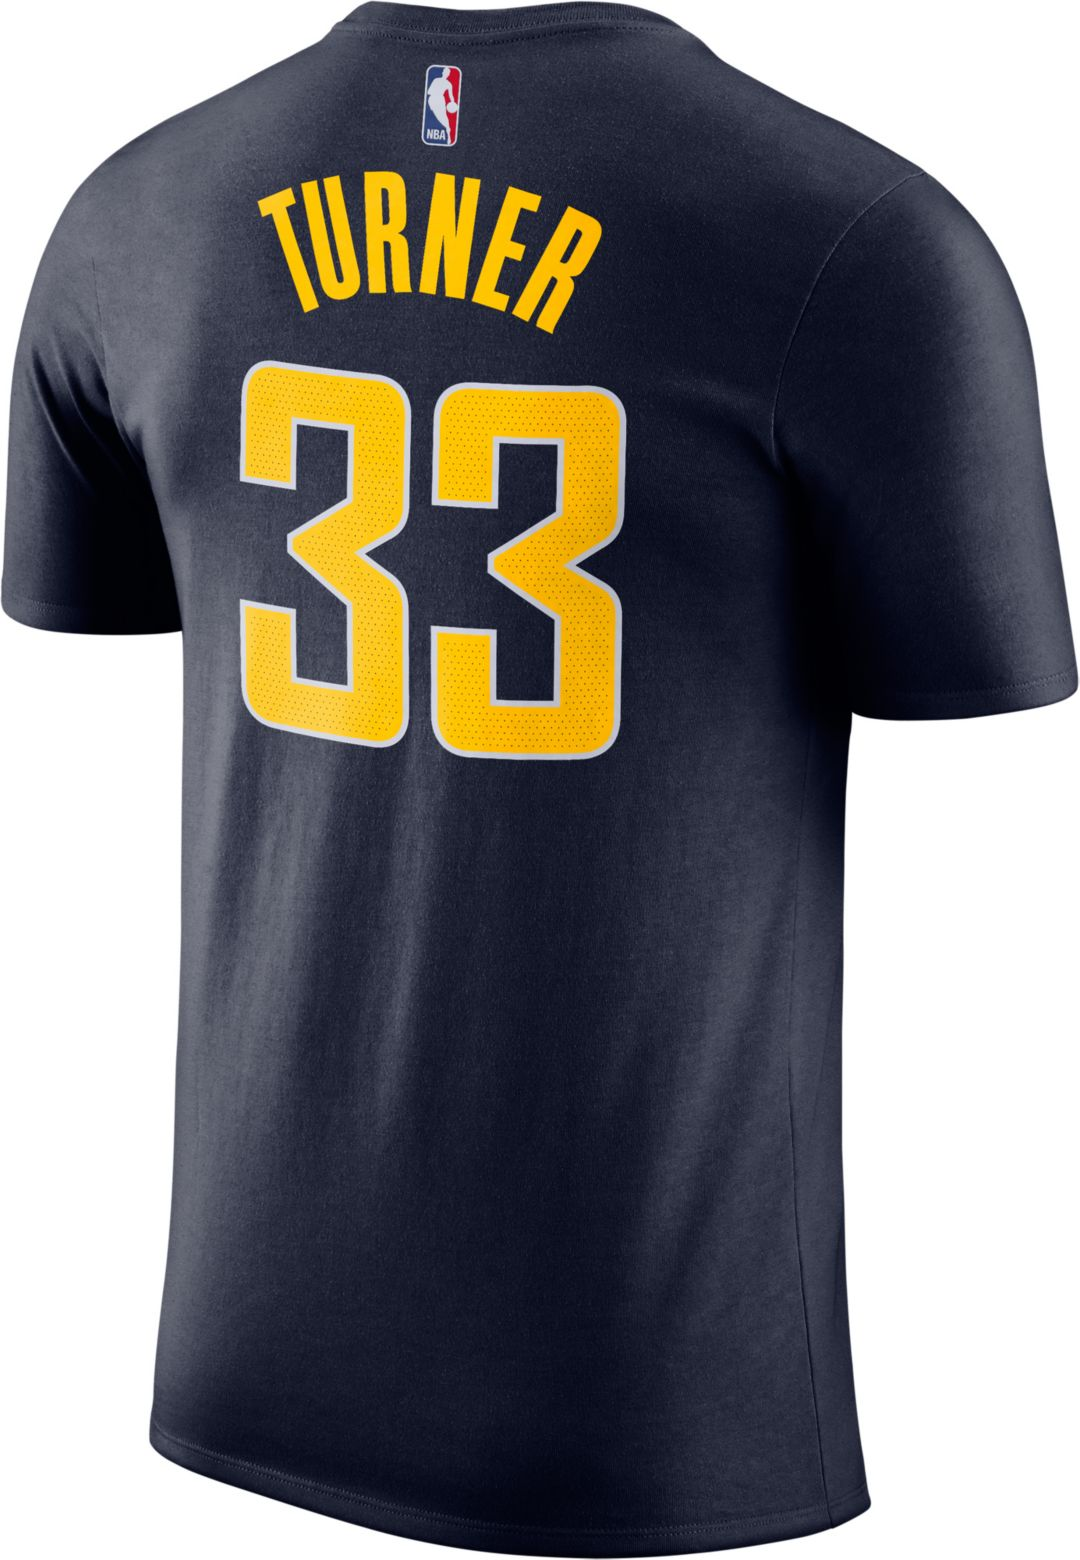 lowest price 0cfc8 e89f6 Nike Men's Indiana Pacers Myles Turner #33 Dri-FIT Navy T-Shirt